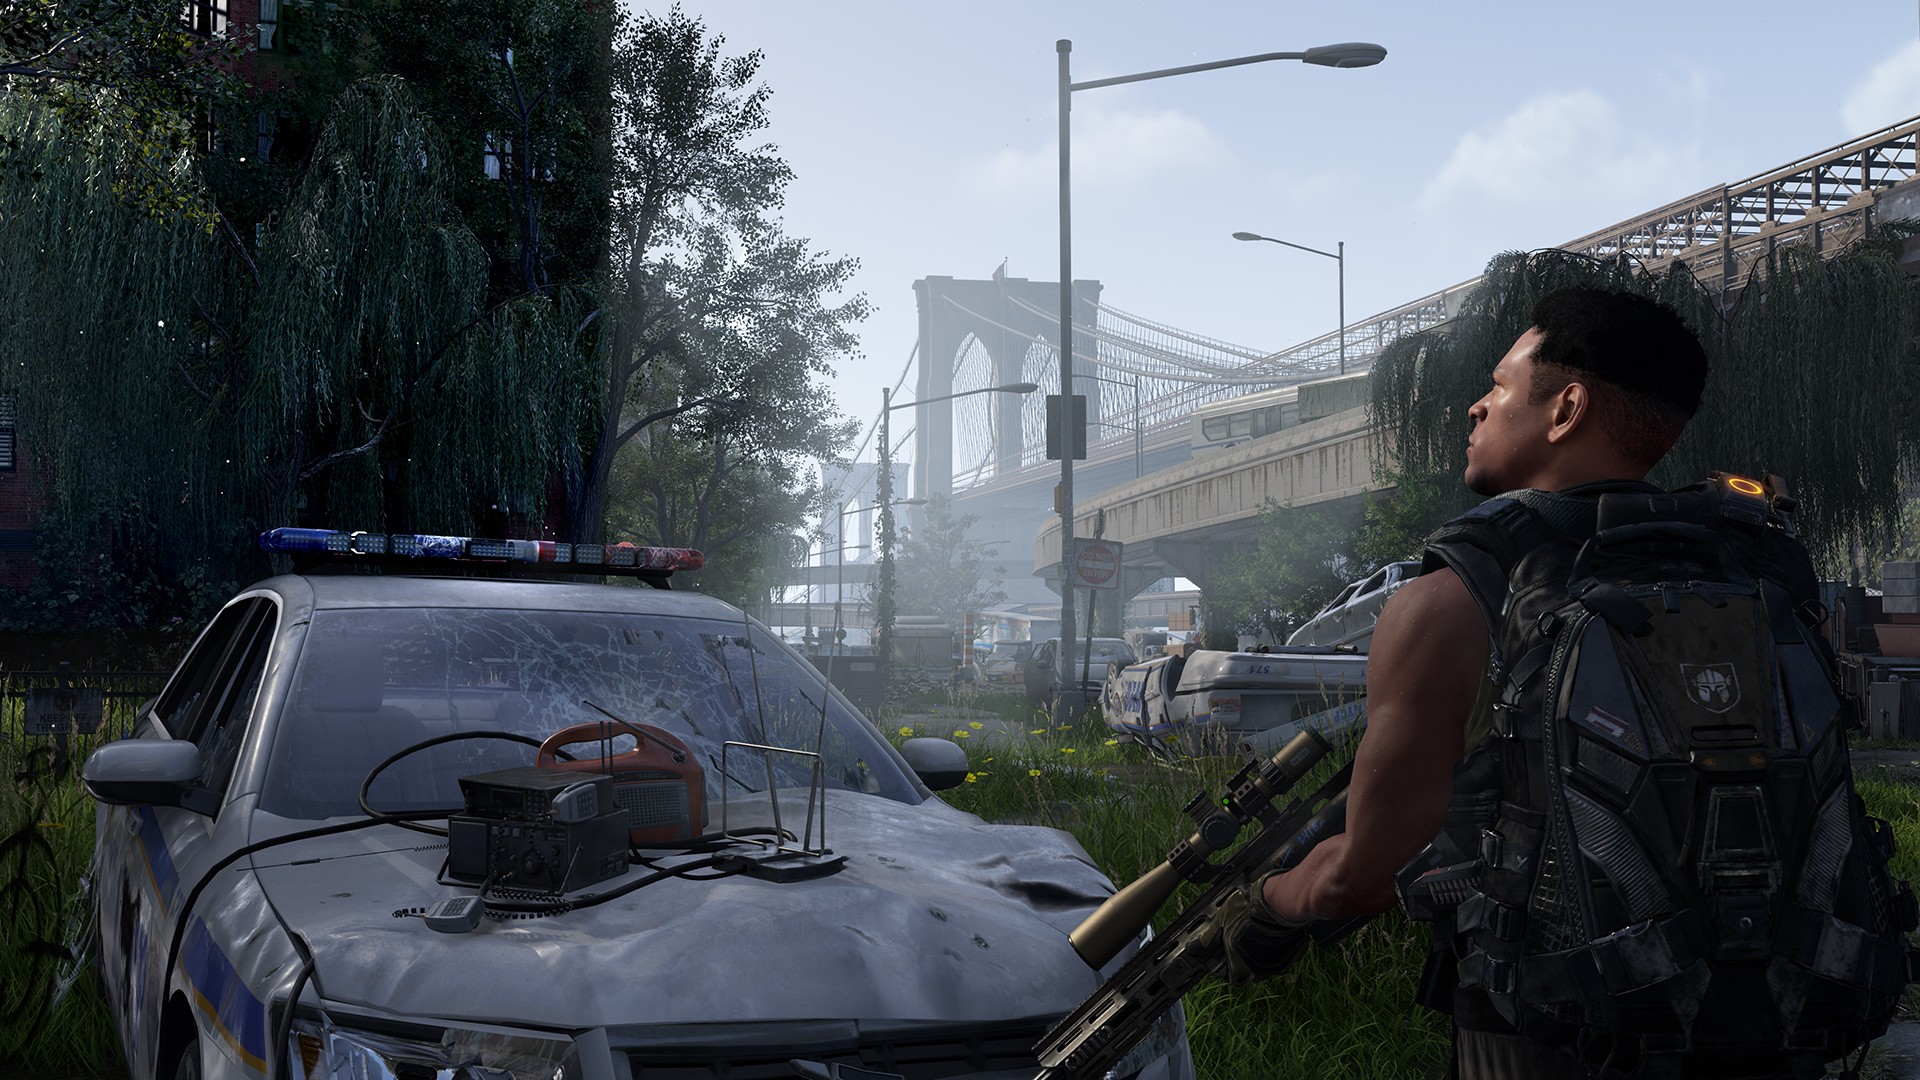 Action, adventure, Massive Entertainment, multiplayer, open world, RPG, Shooter, Tactical, The Division 2 – Warlords of New York – Expansion, The Division 2 – Warlords of New York – Expansion Review, third-person, Third-person-shooter, Tom Clancy's The Division 2, Tom Clancy's The Division 2 Review, Ubisift, Ubisoft Entertainment